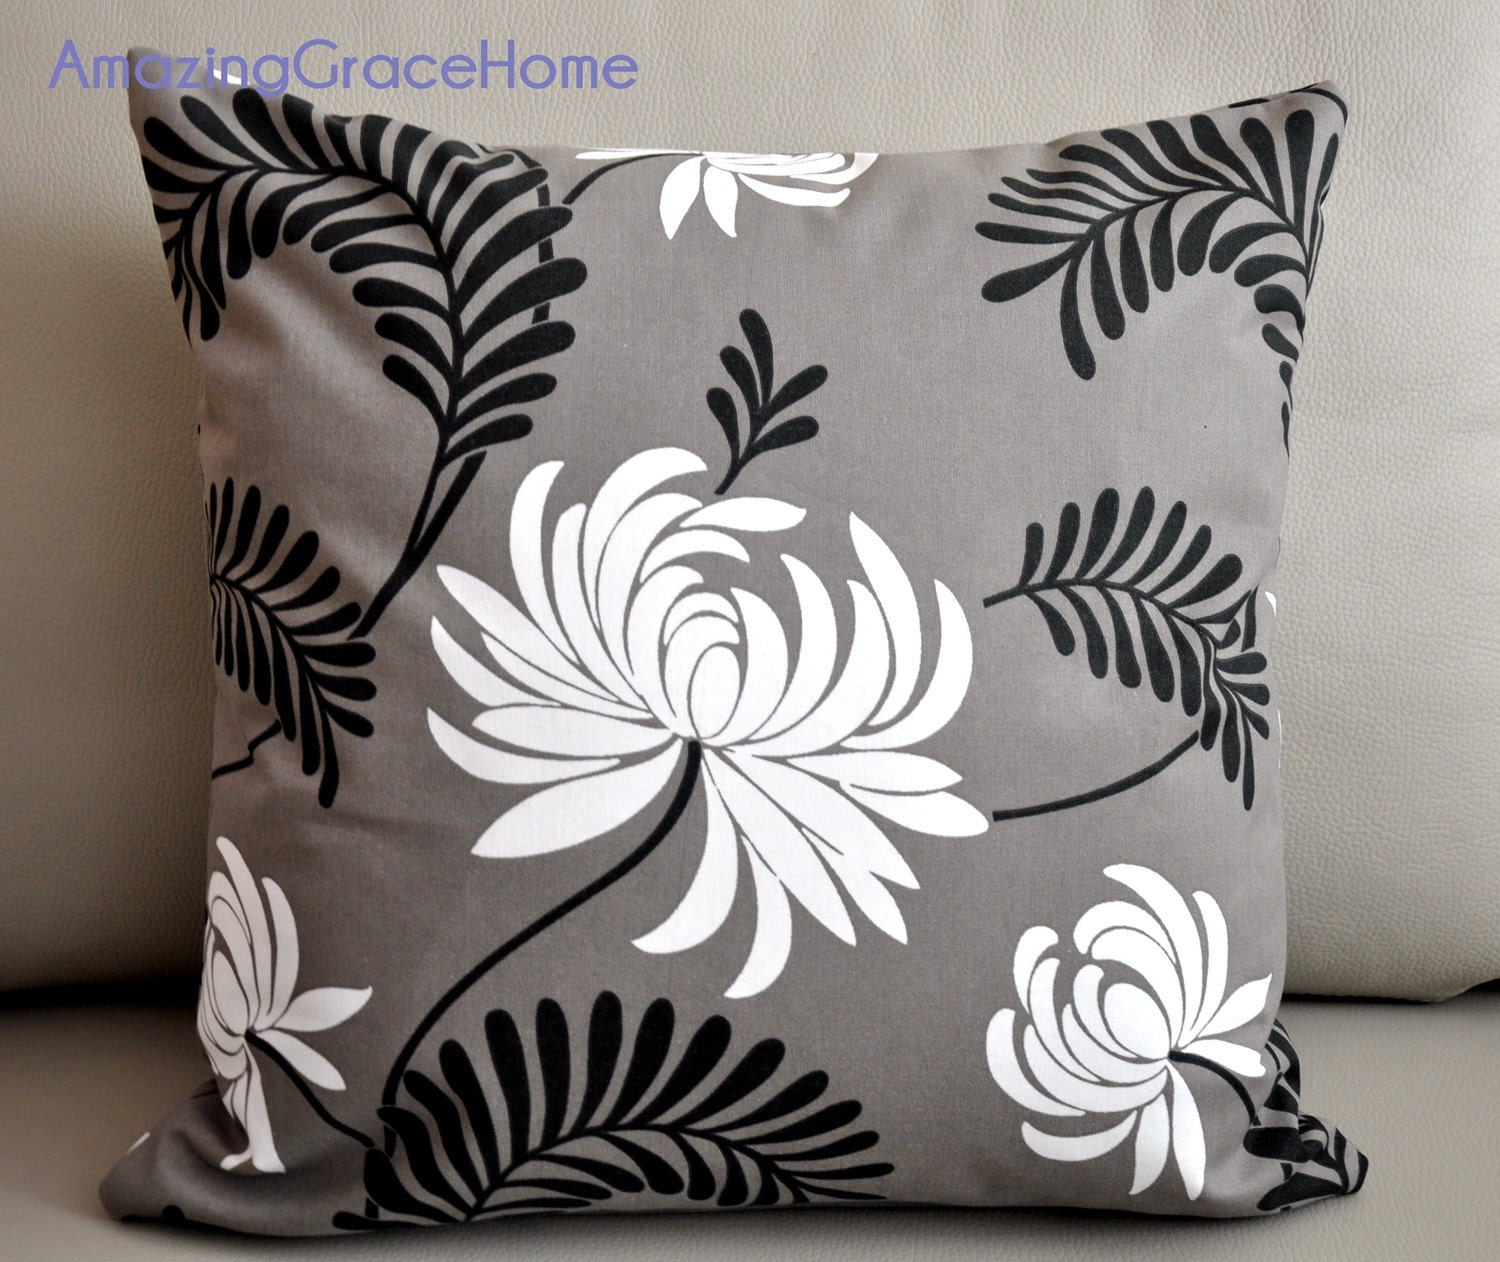 Decorative Pillow Covers With Zippers : Zippered cotton throw pillow covers taupe swirl floral